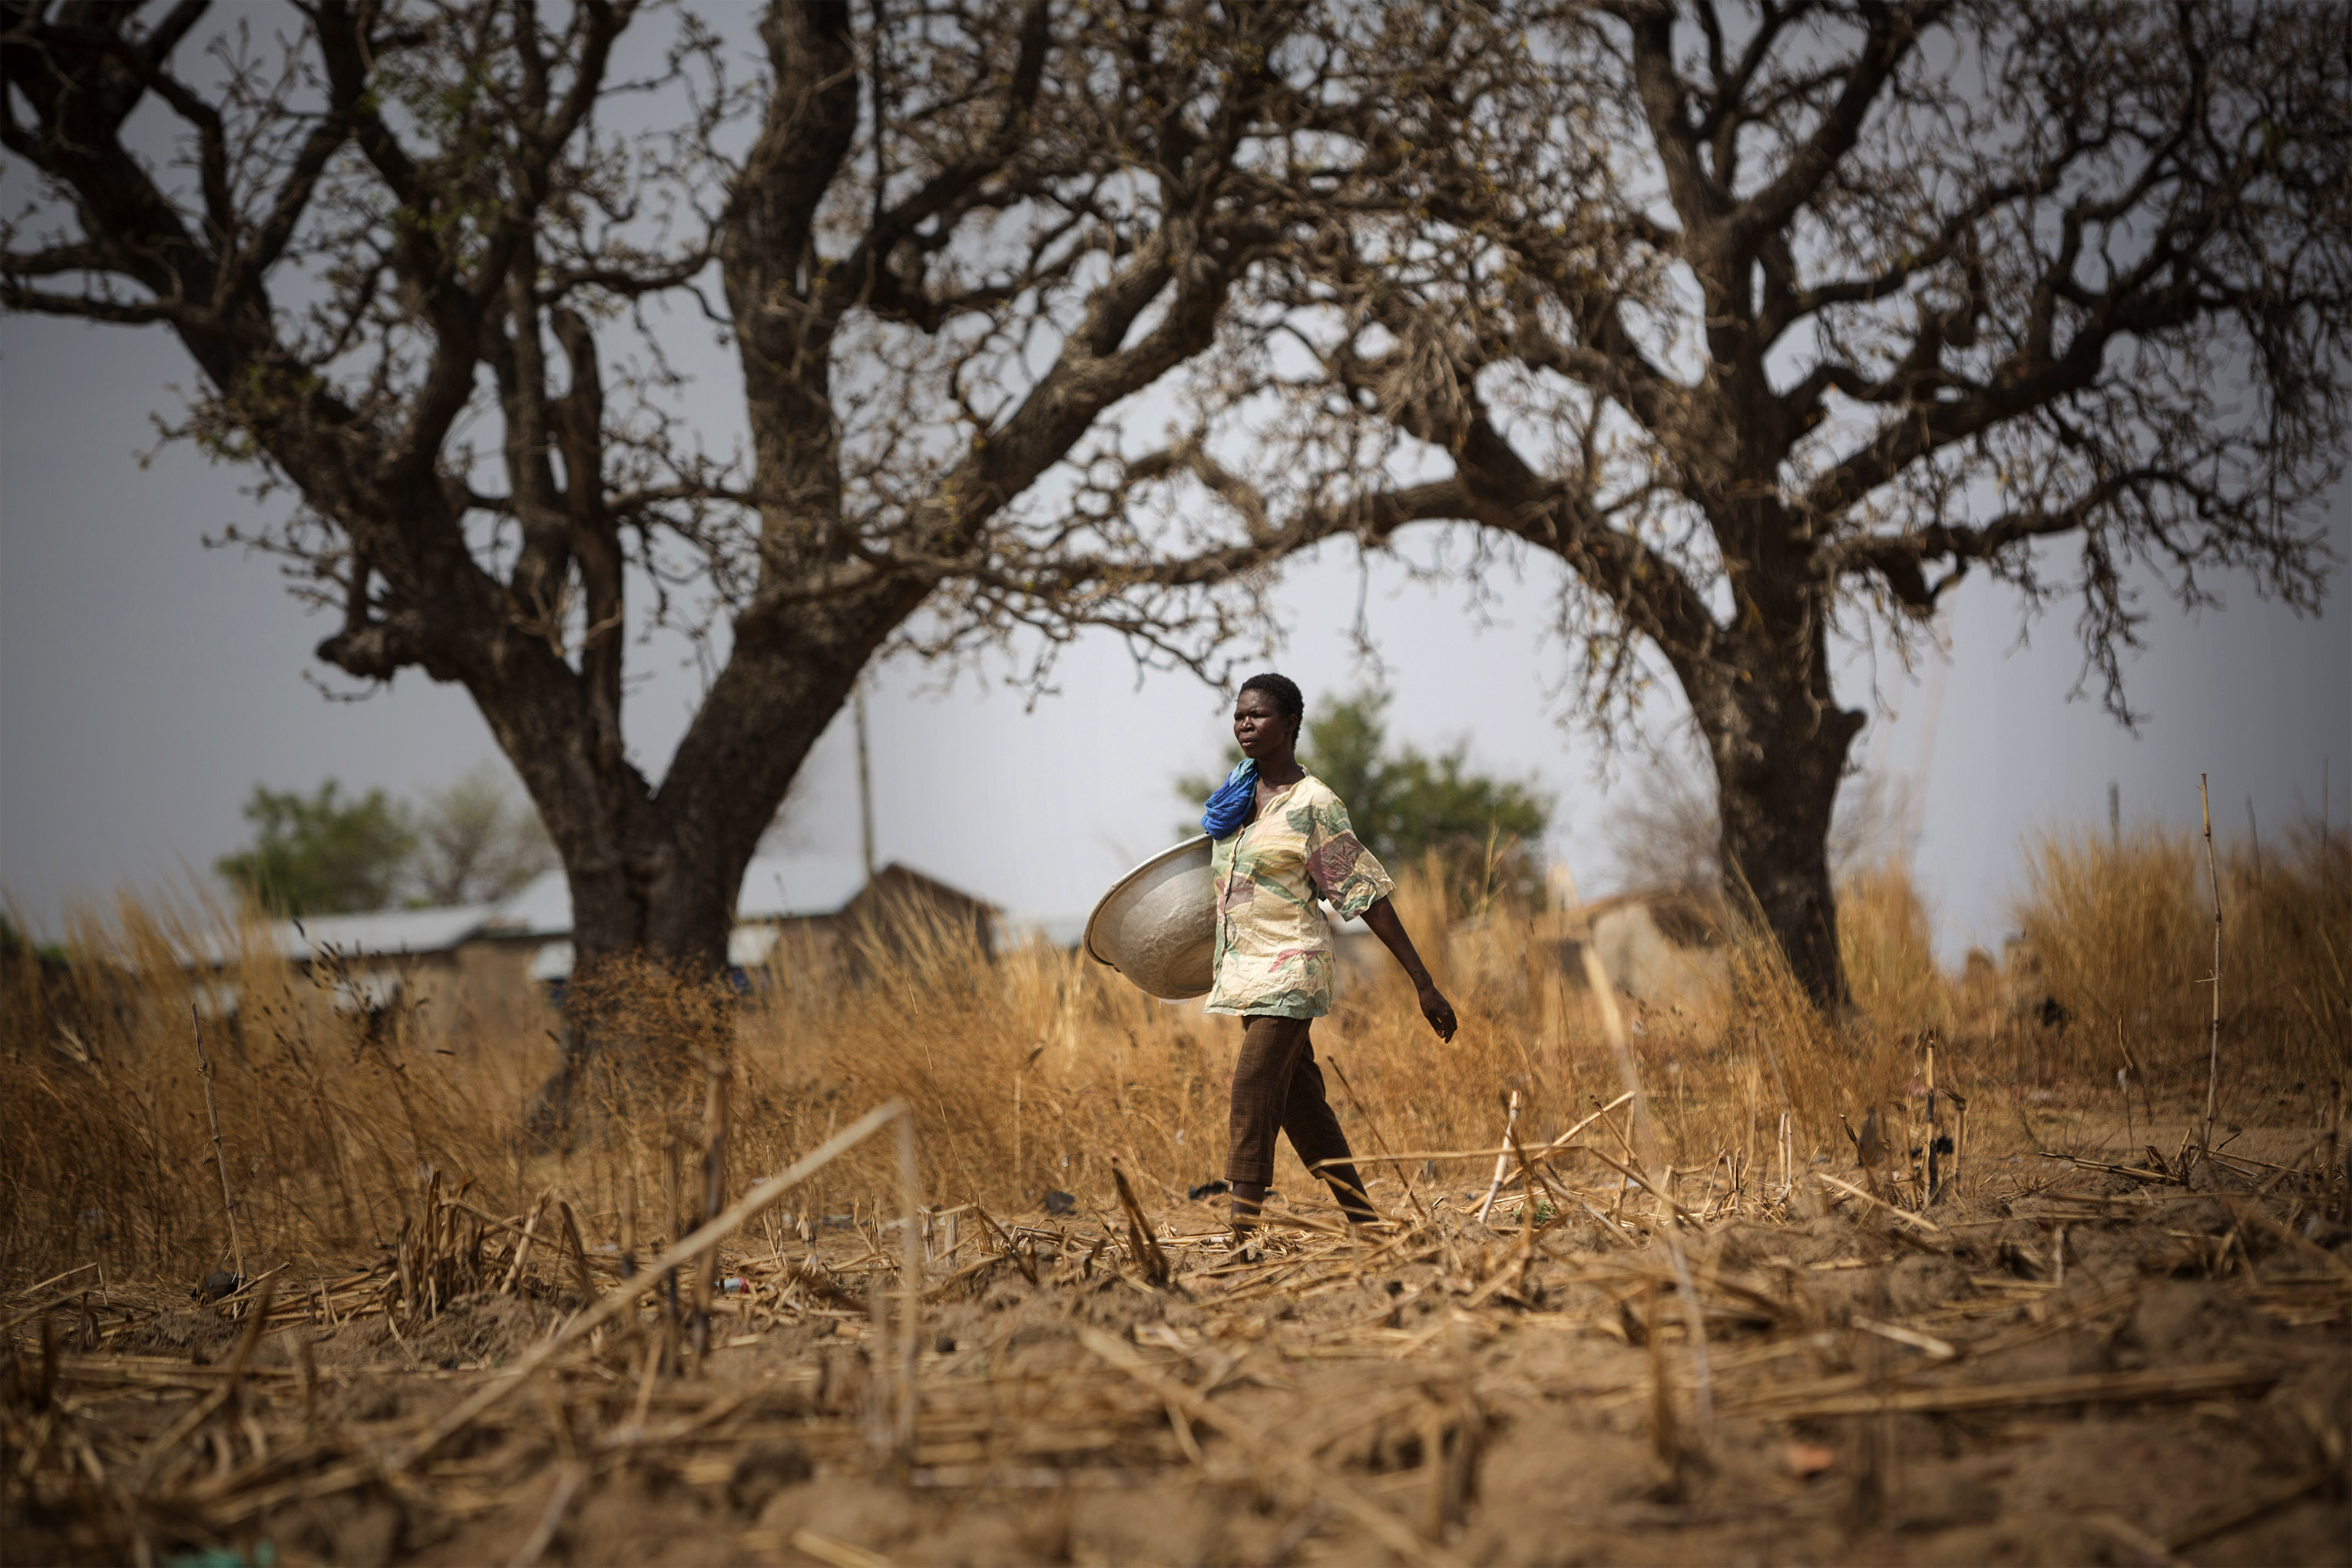 About 70% of the population depends directly or indirectly on agriculture (fisheries, crop and animal farming) and the forest sector. Photo by Jake Lyell for CRS